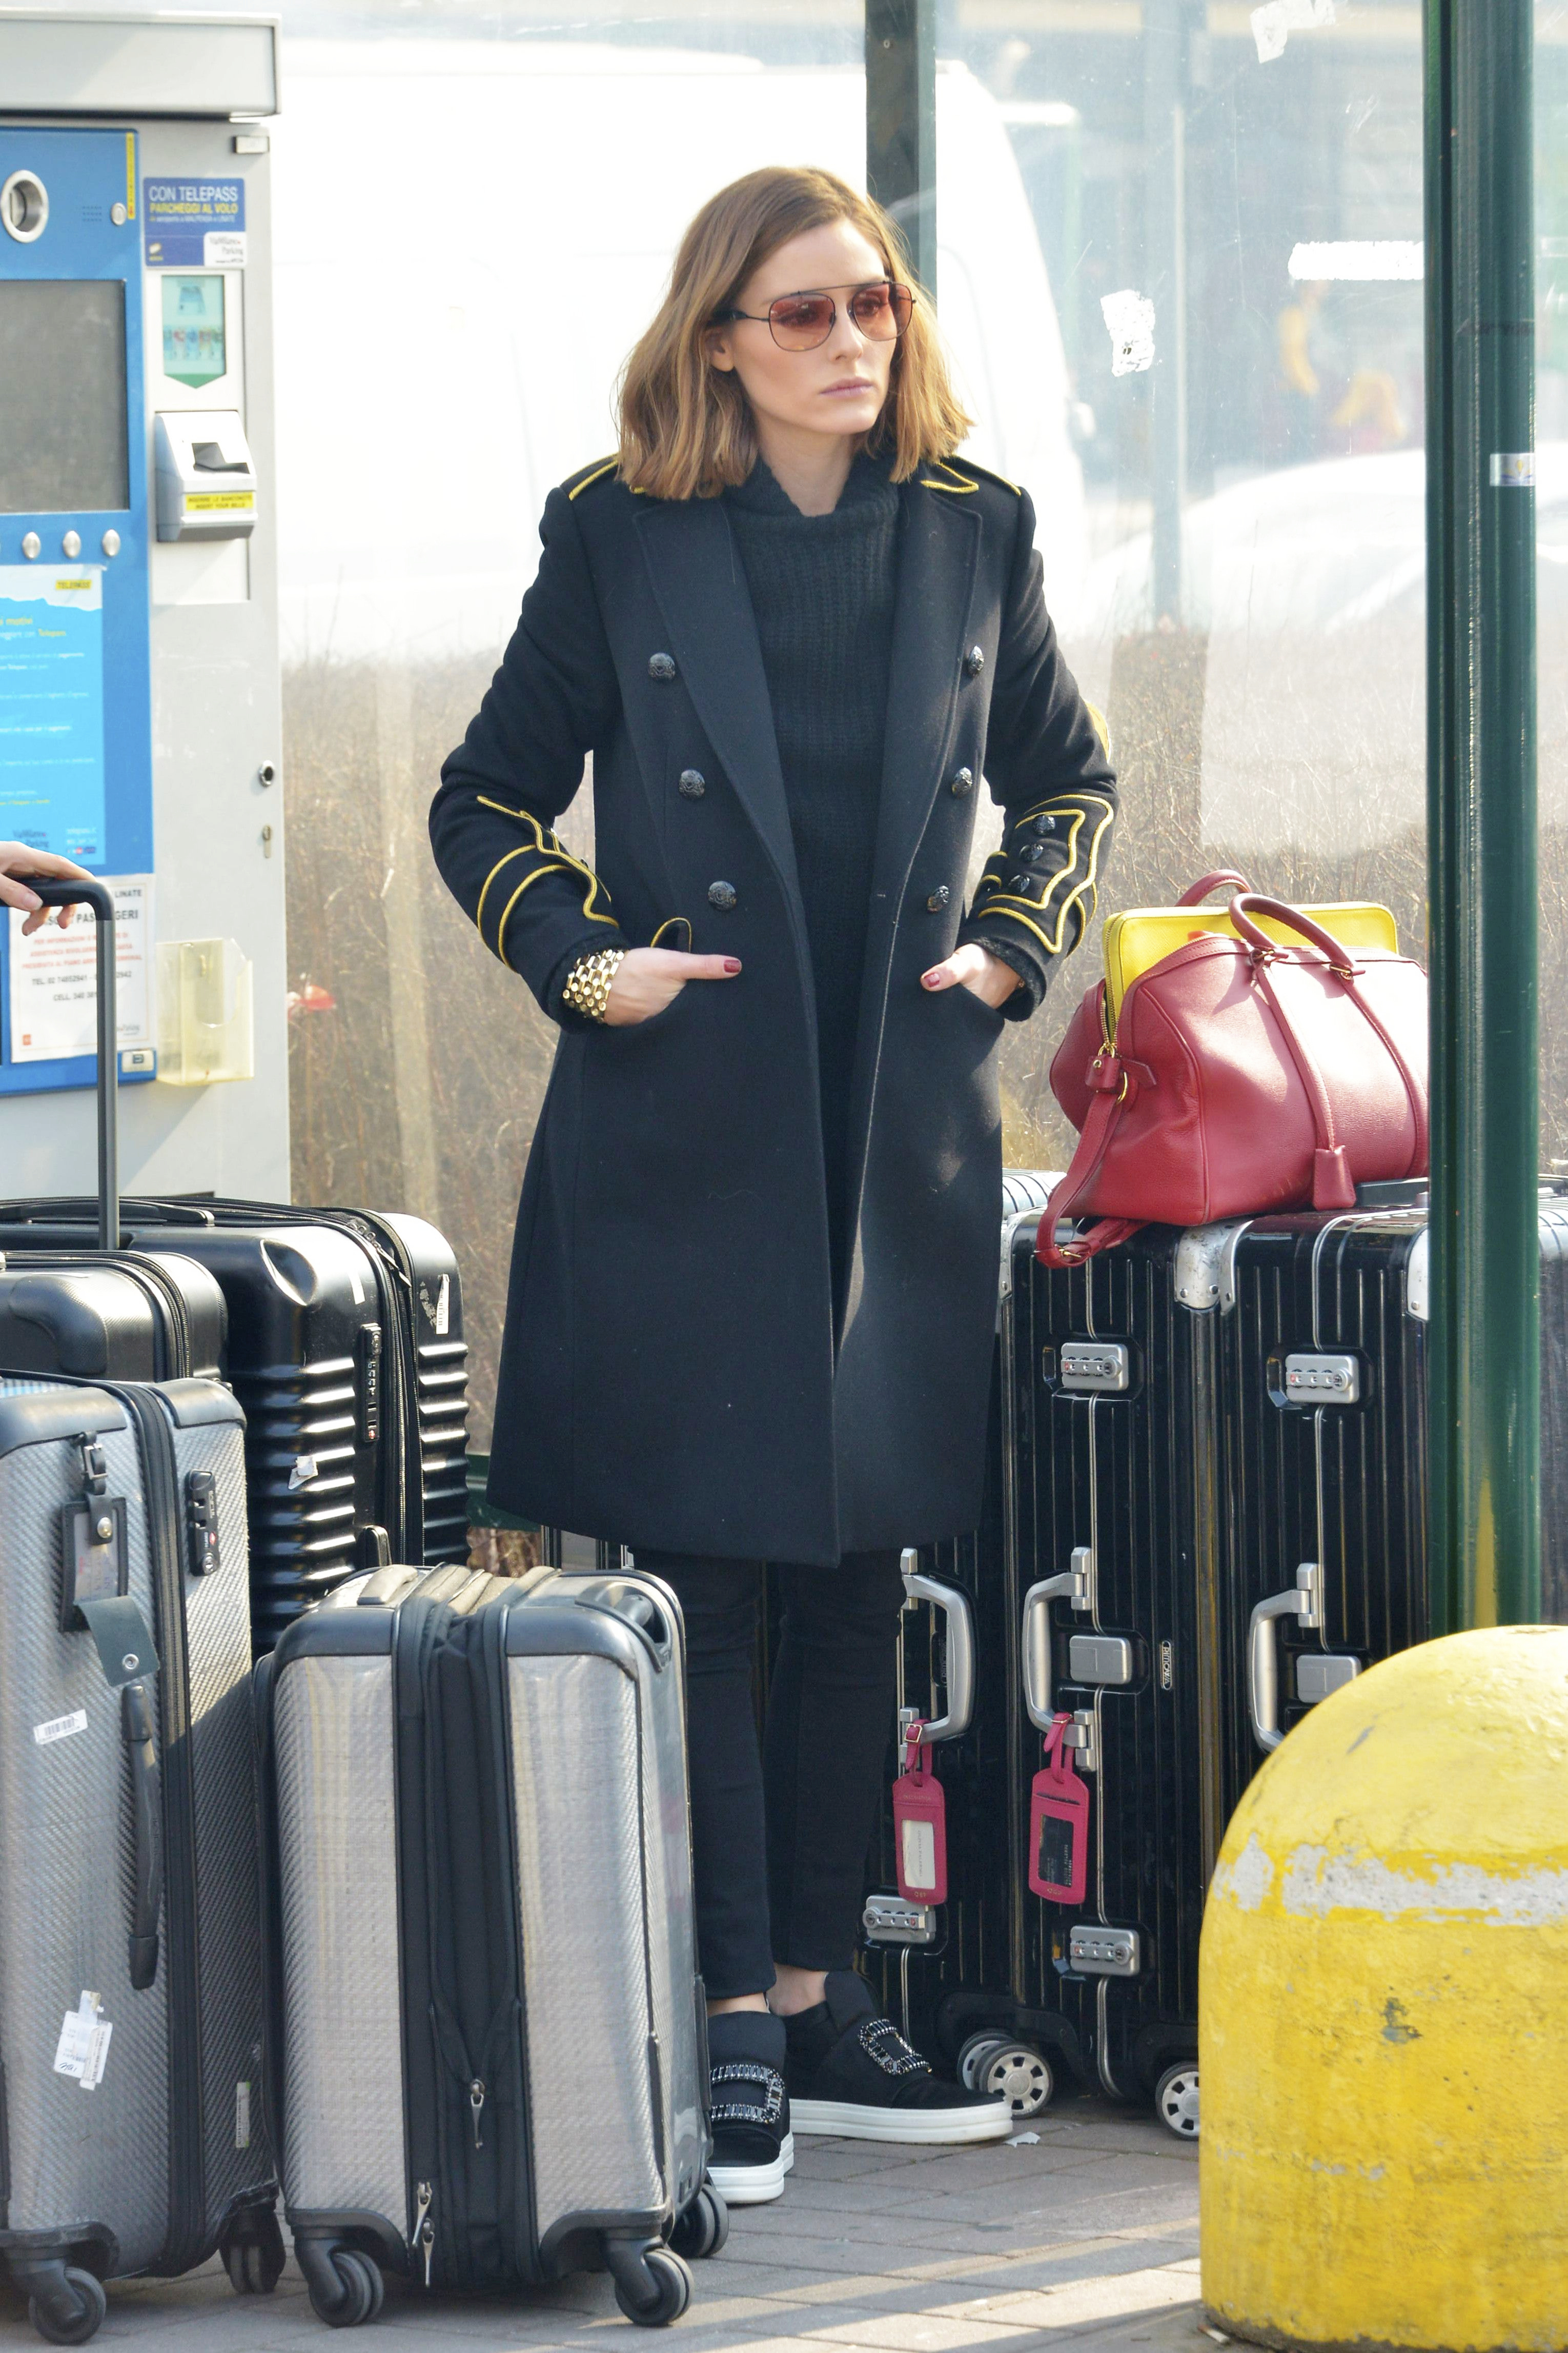 Olivia Palermo displays her perfect skin as the natural beauty arrives at Linate airport in Milan, Italy. February 20, 2018 X17online.com USA ONLY